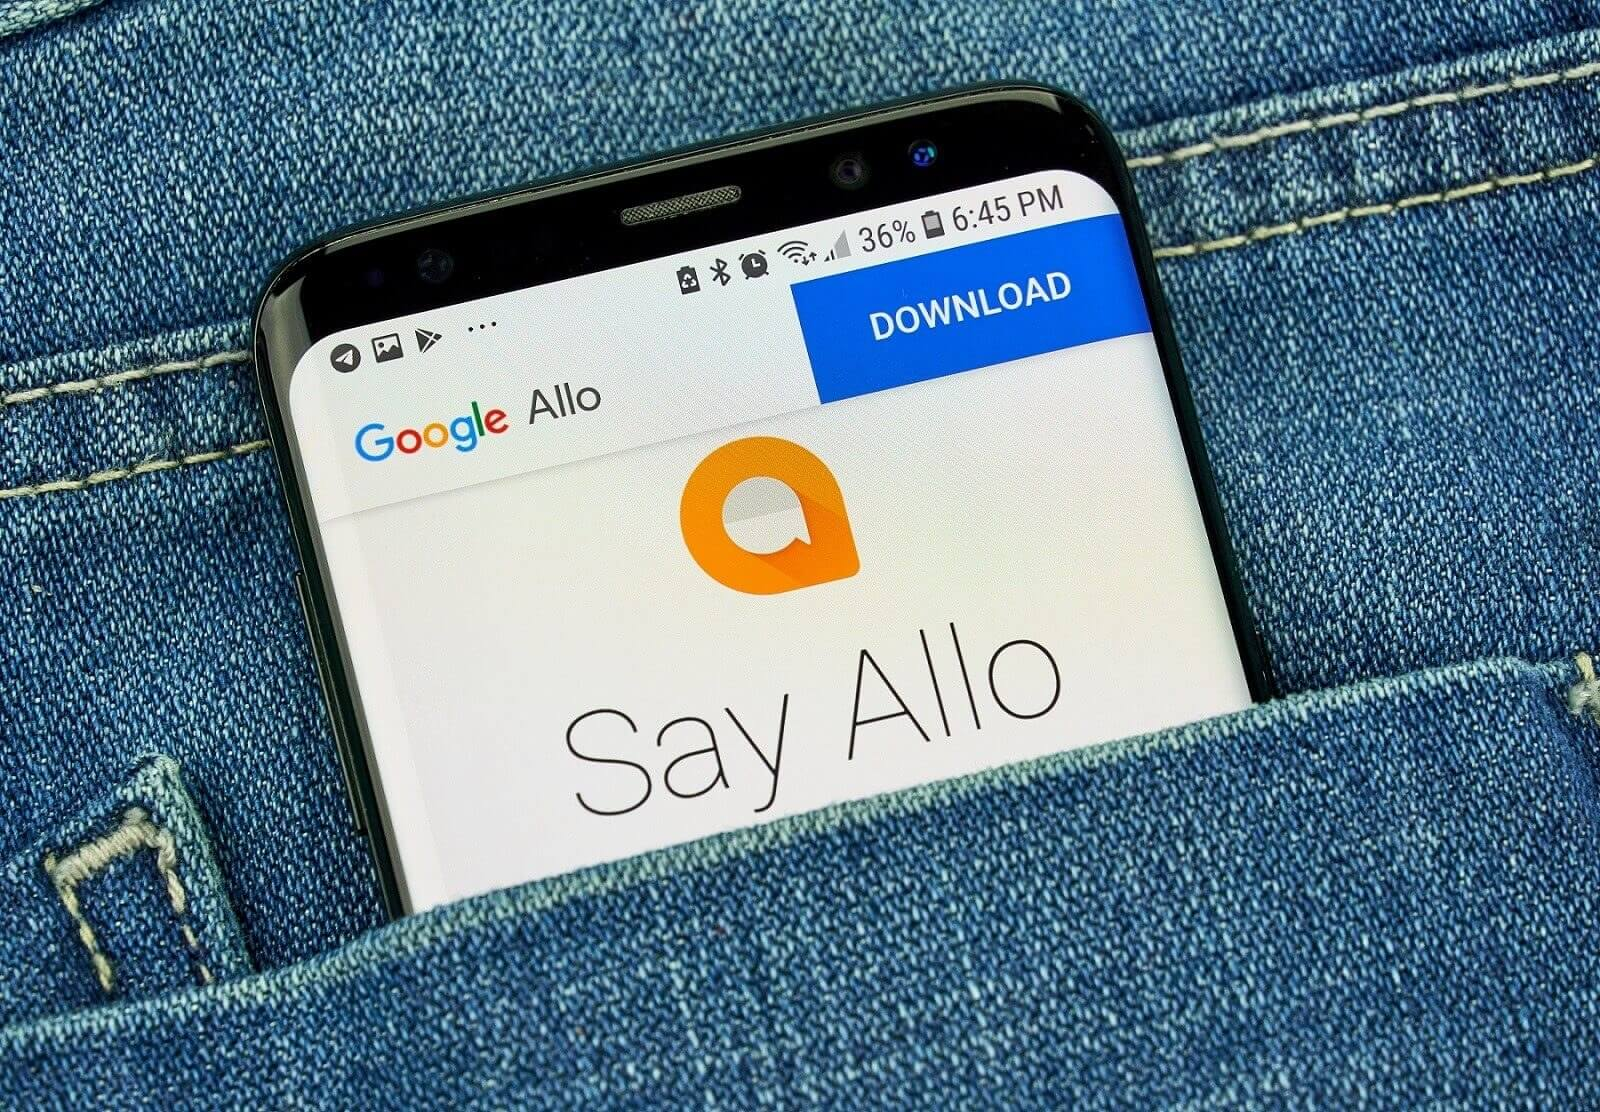 Google Allo shuts down today. Here's how to save your chats